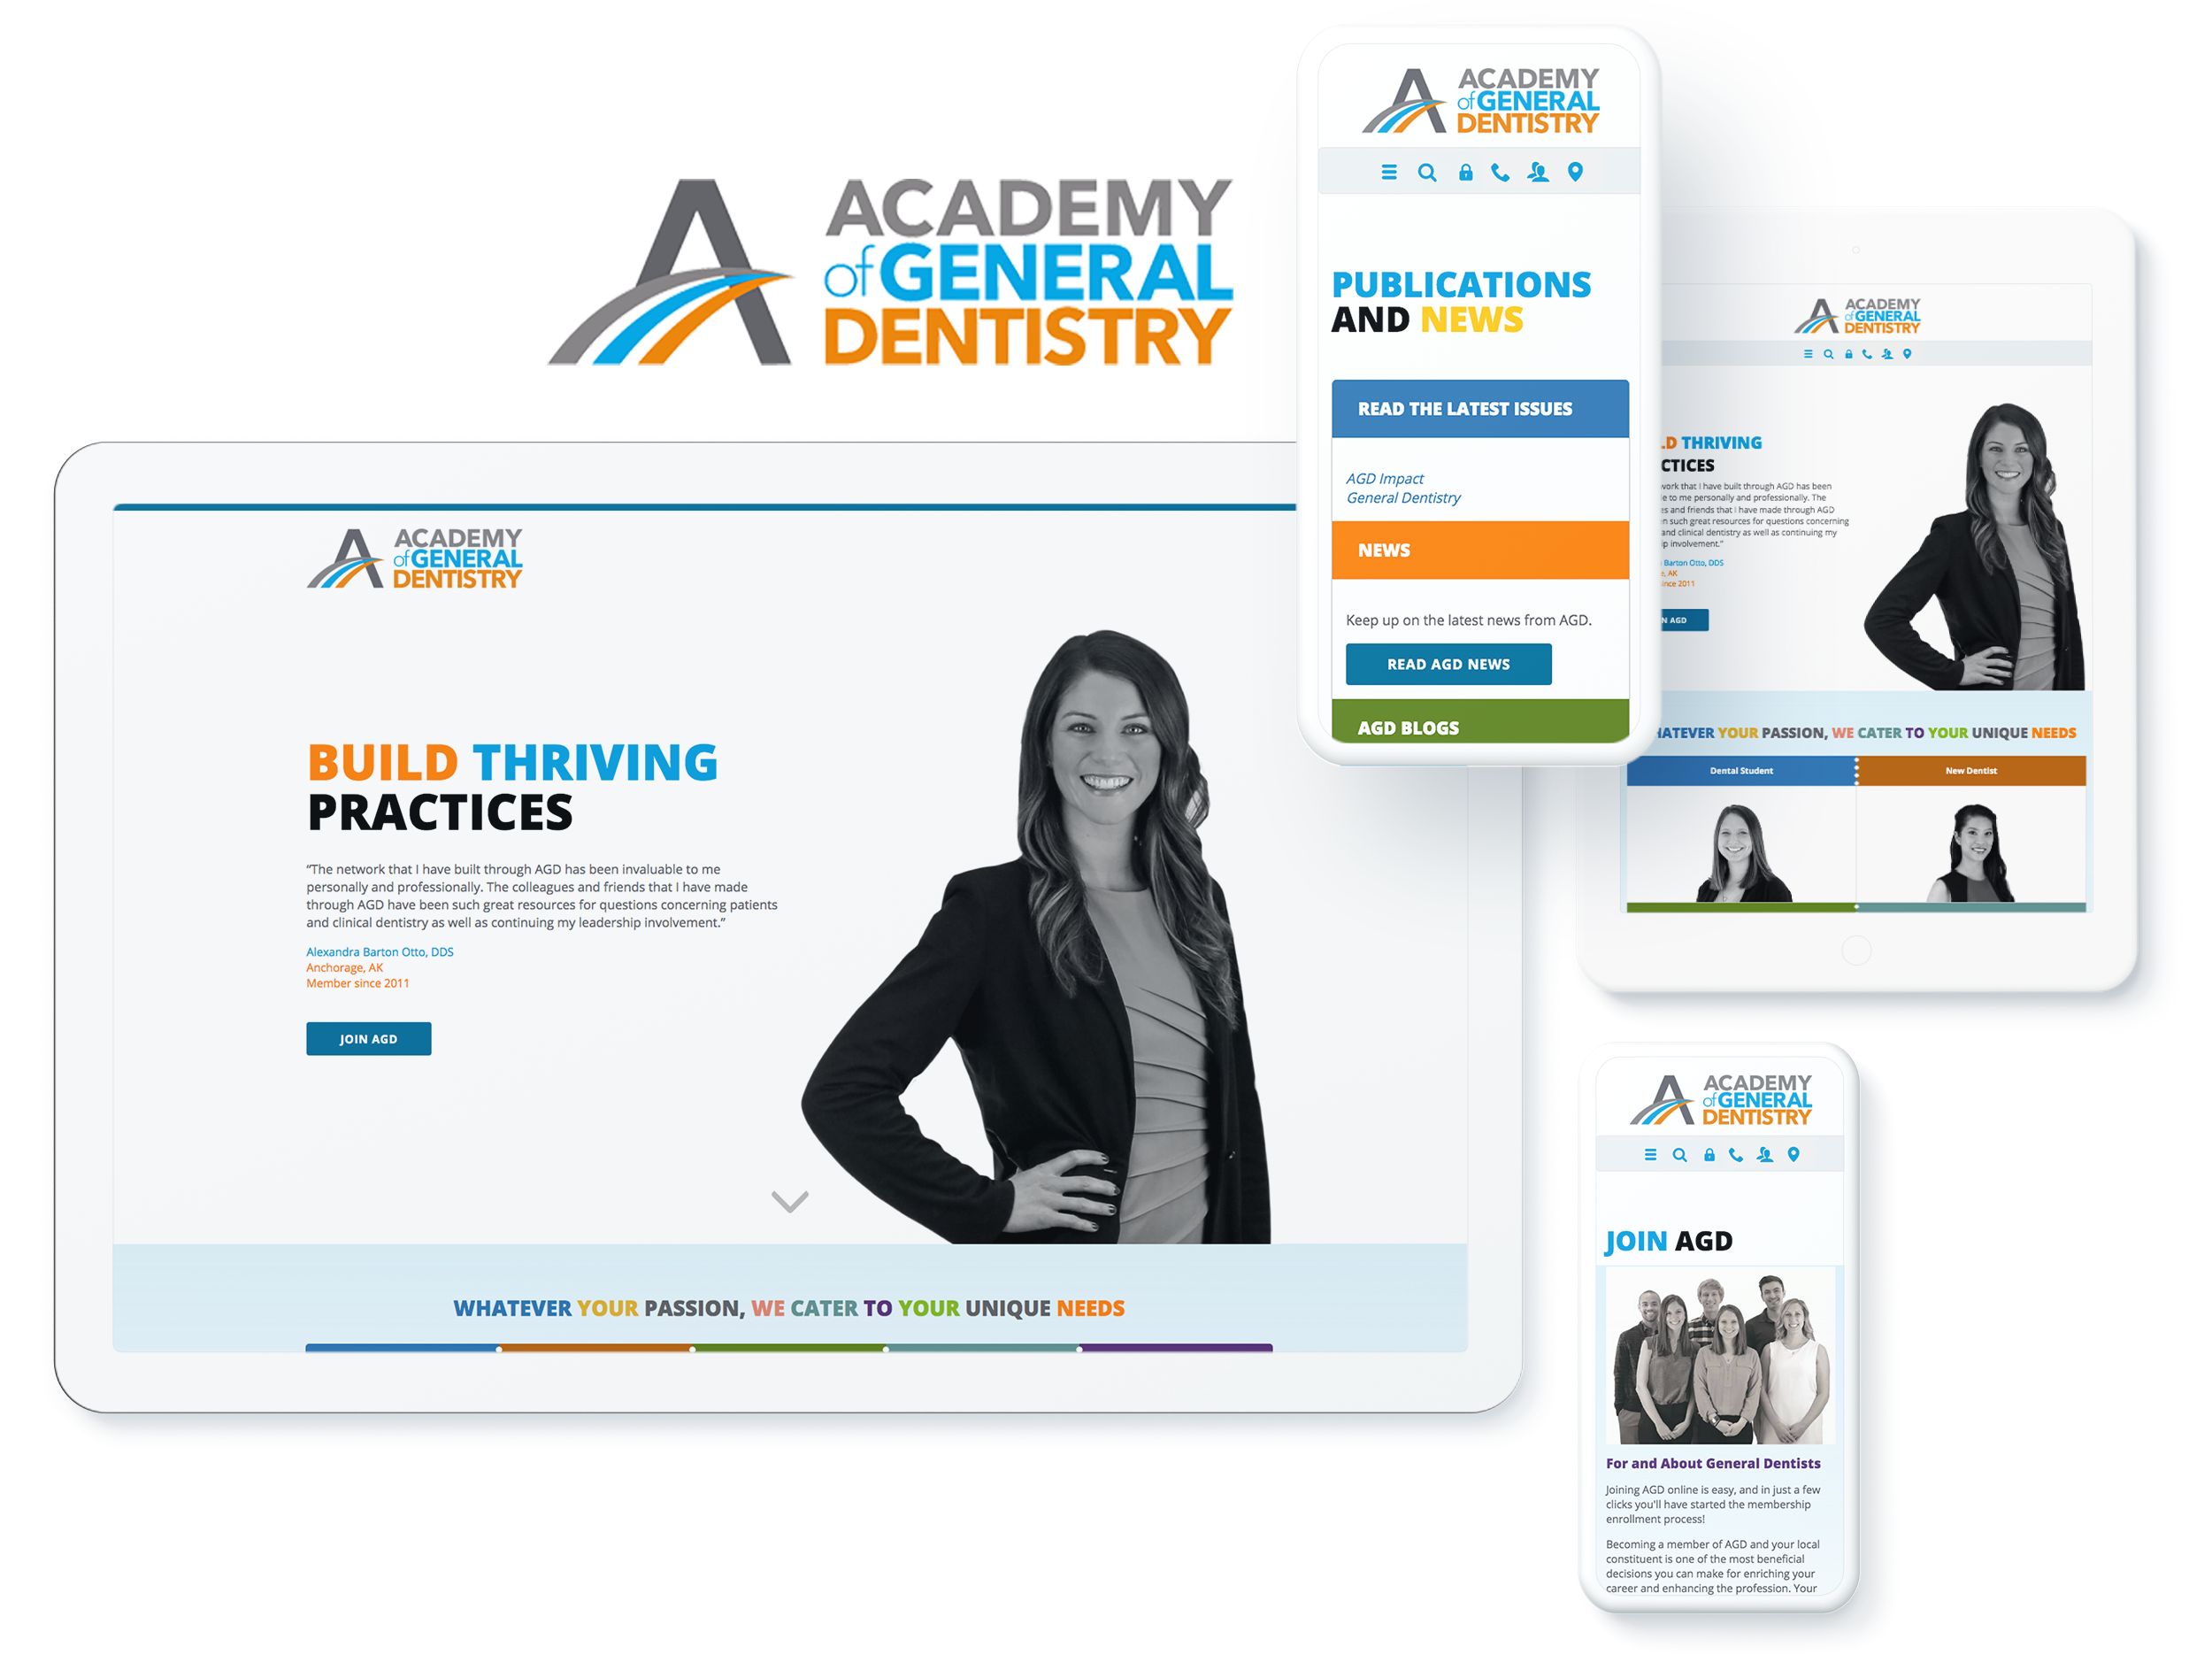 AcademyofImplantDentistry